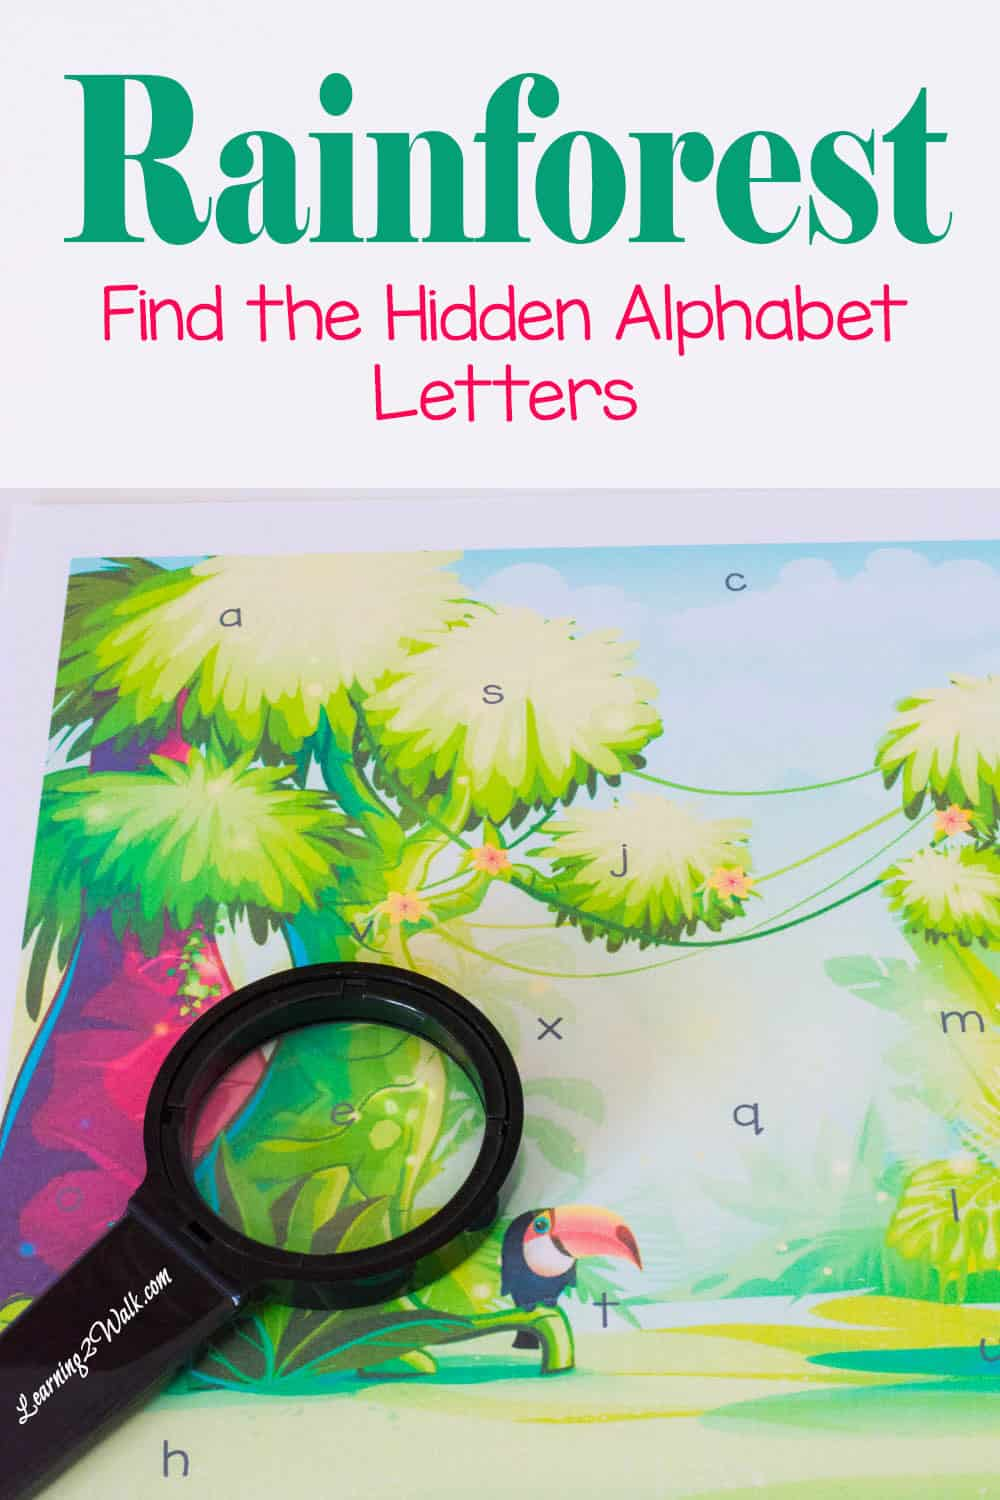 Find the Hidden Preschool Letters- Rainforest Alphabet Game